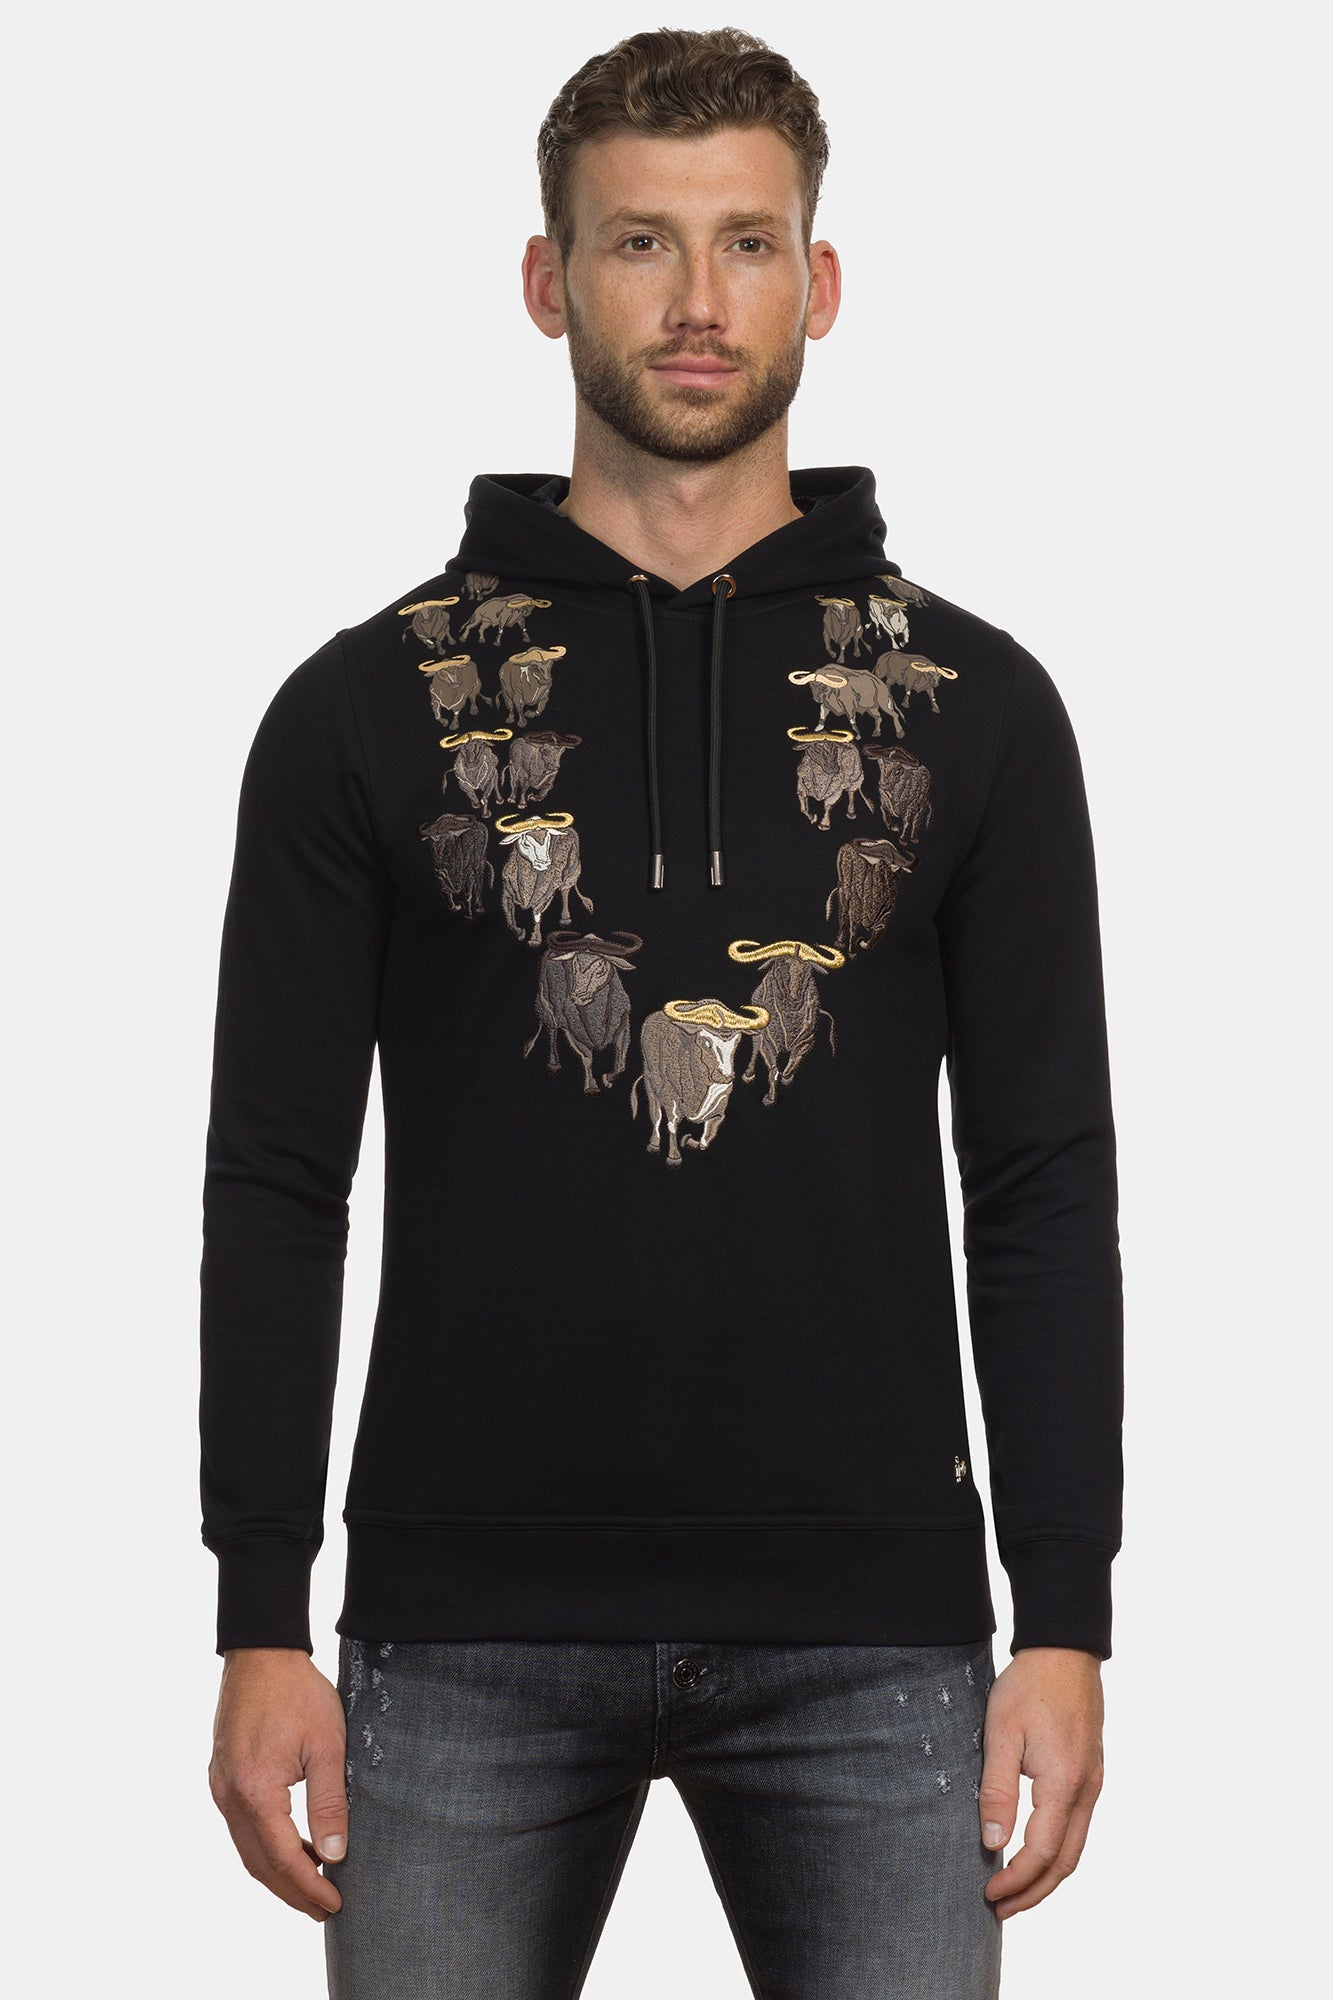 African Buffalos Hoodie Sweater - DIMORAL OFFICIAL